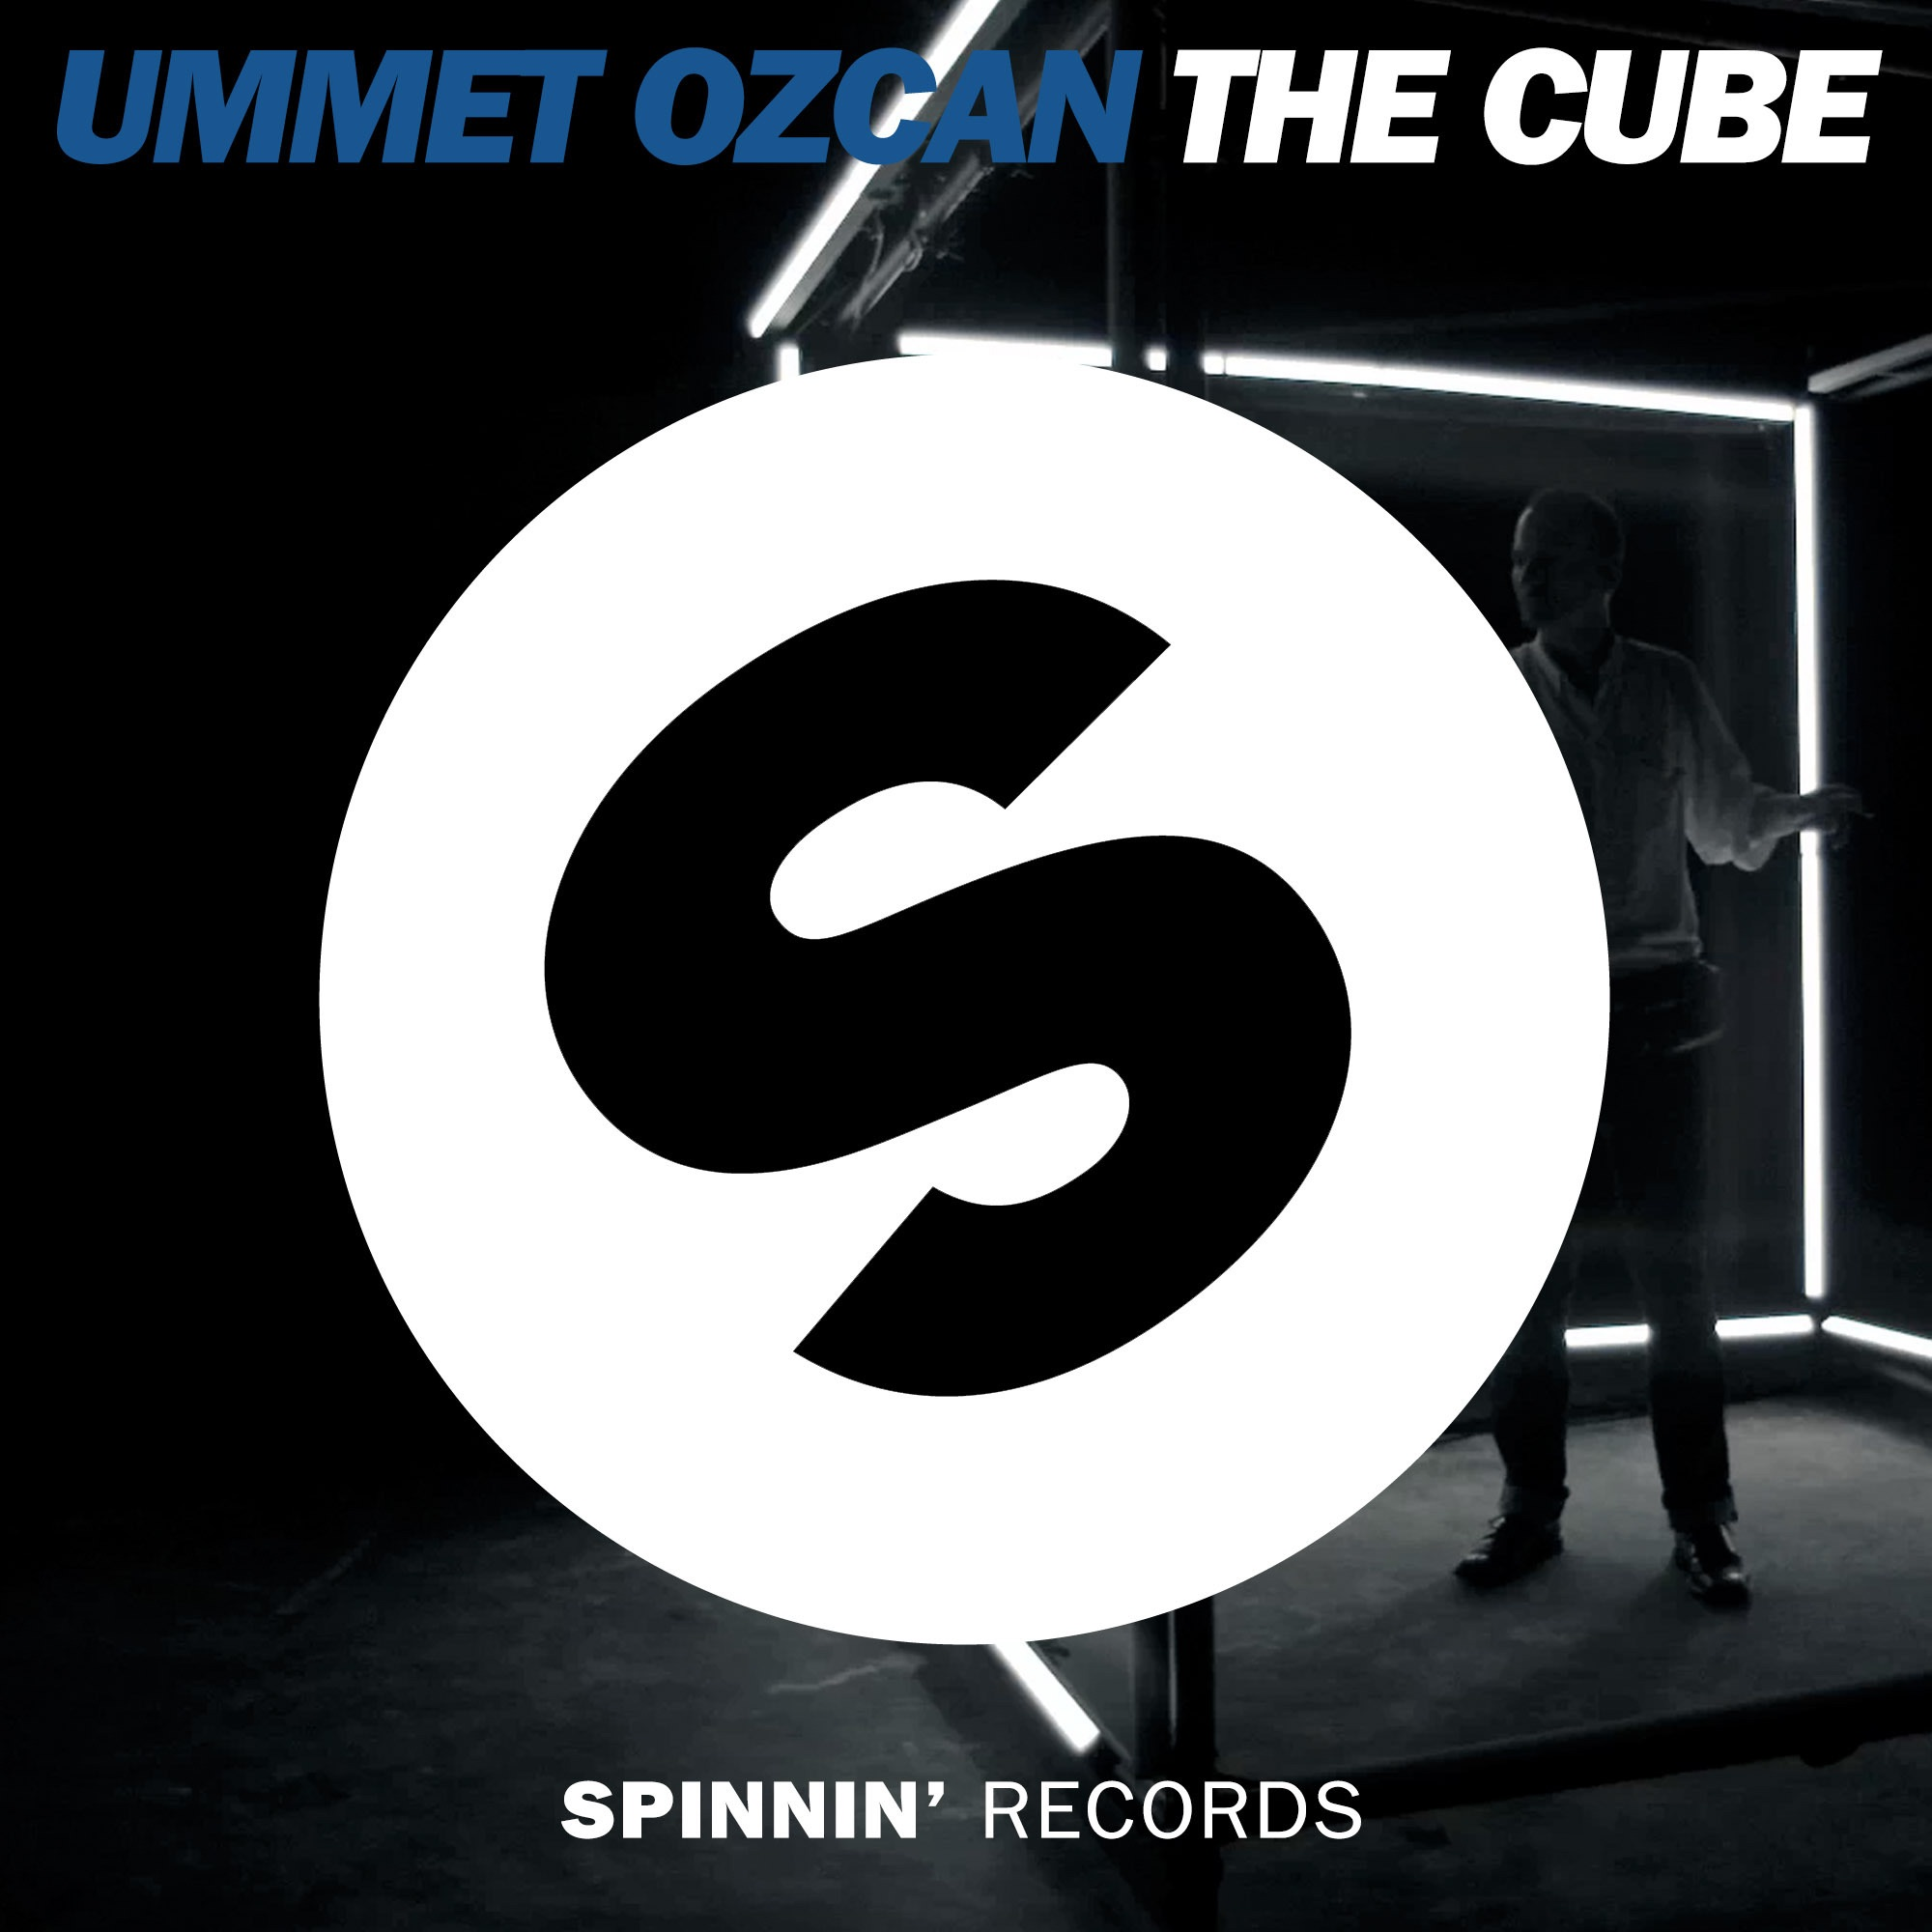 The Cube - Single